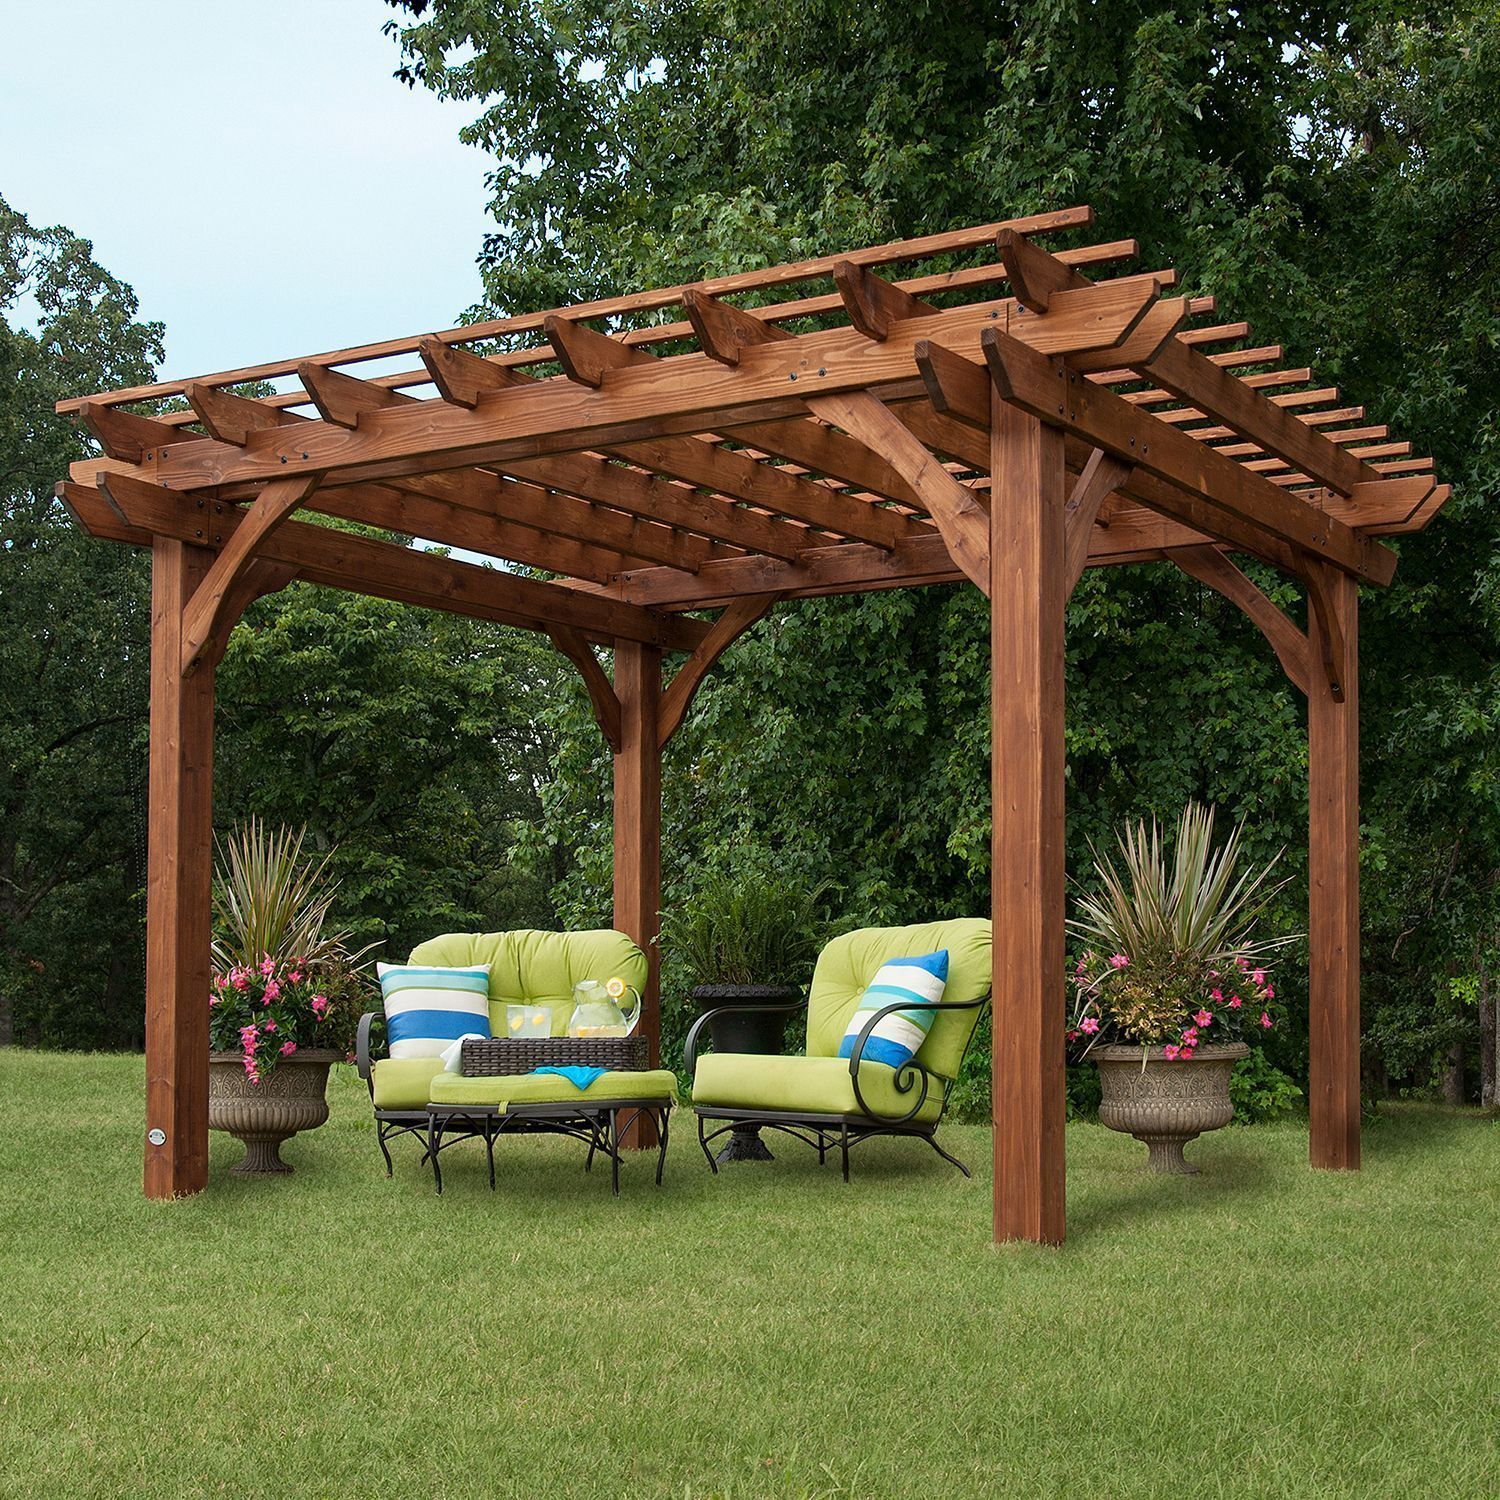 10 X 12 Cedar Pergola Sam S Club Outdoor Pergola Backyard Patio Backyard Pergola